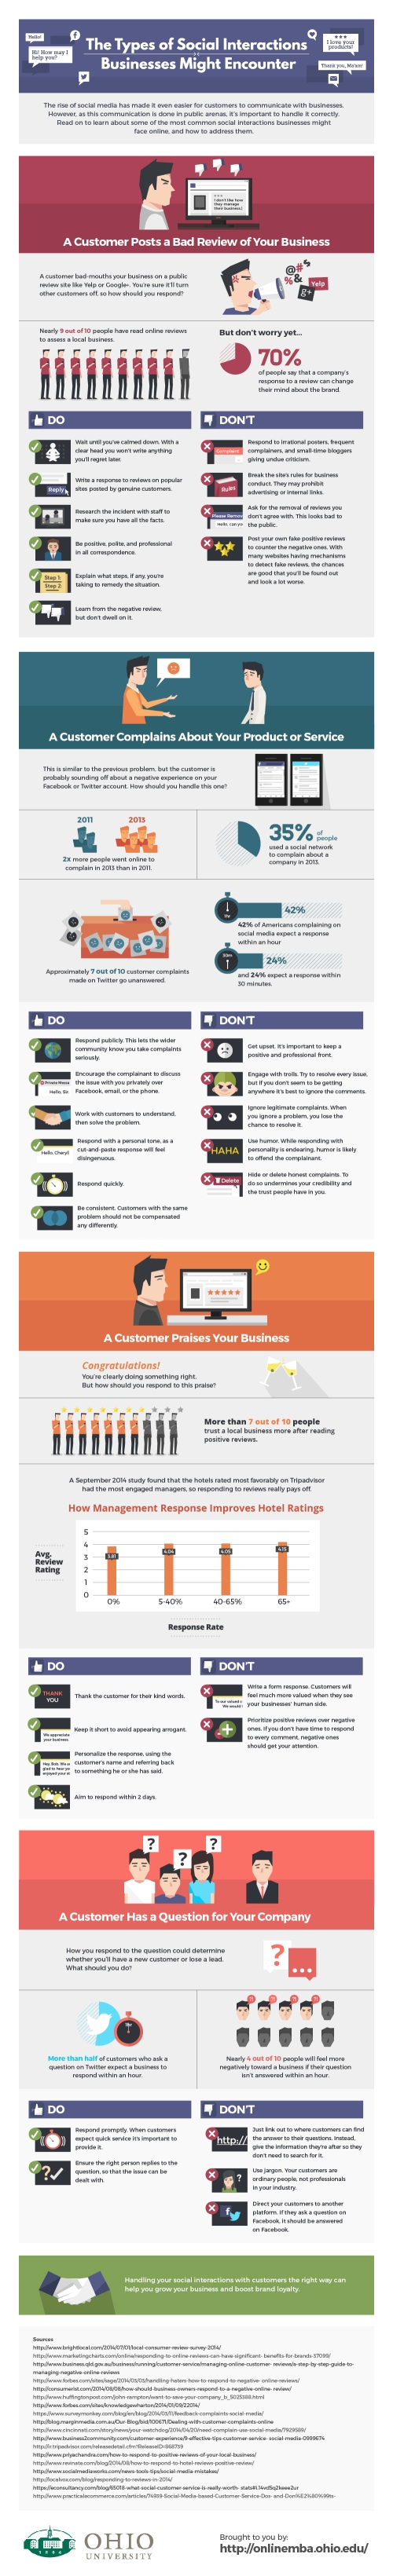 OU_MBA_Business_Social_interactions_Infographic